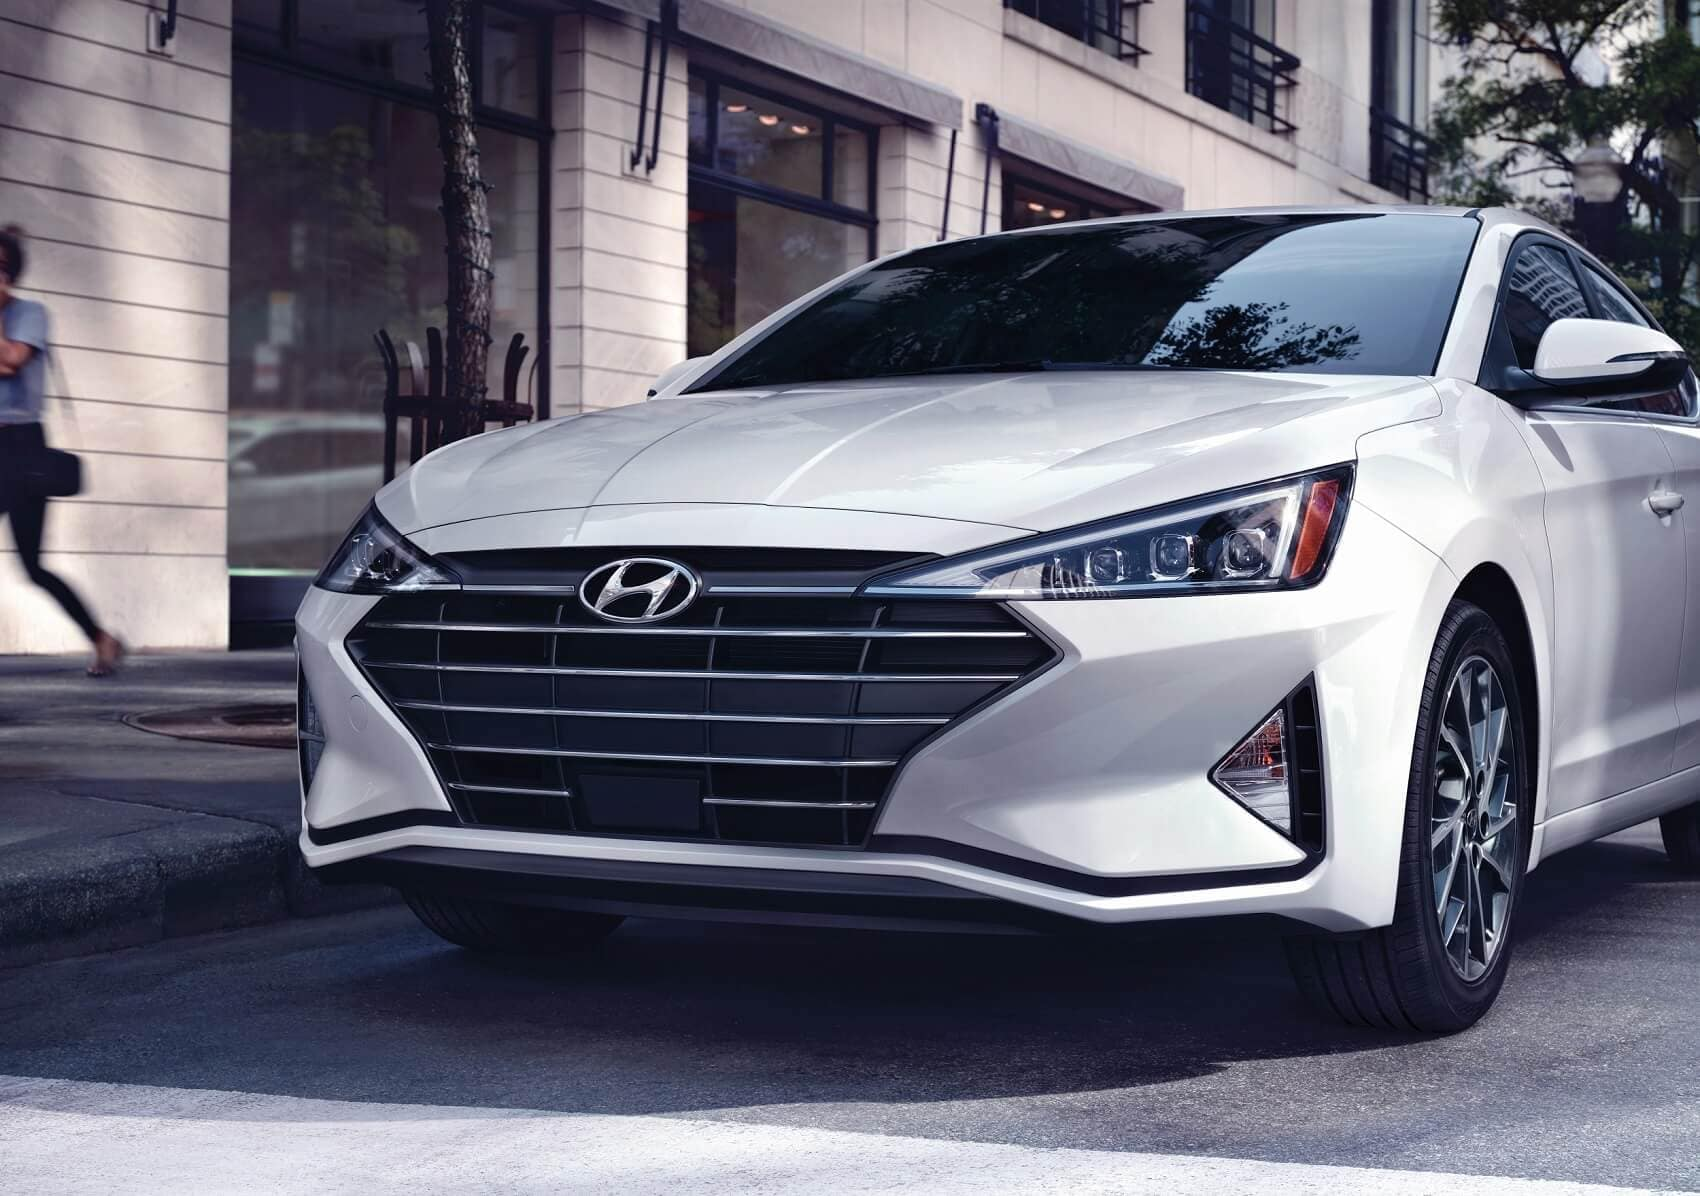 With our convenient location at 777 lynnway in lynn, ma, pride hyundai of lynn is easy to get to from all over the north shore. Hyundai Dealer Near Me Key Hyundai Vernon Ct